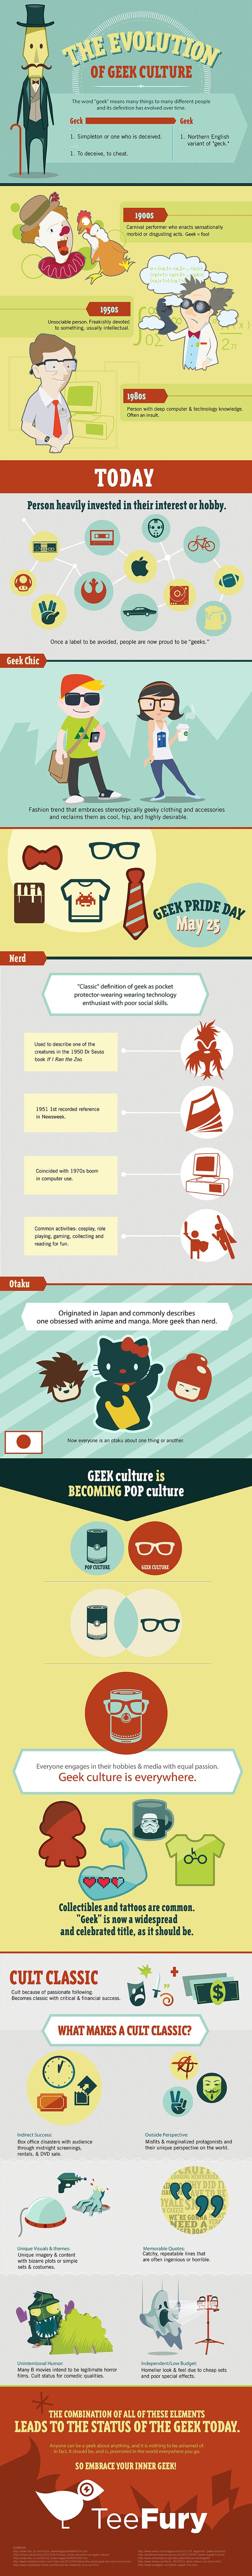 The Evolution Of Geek Culture [Infographic]